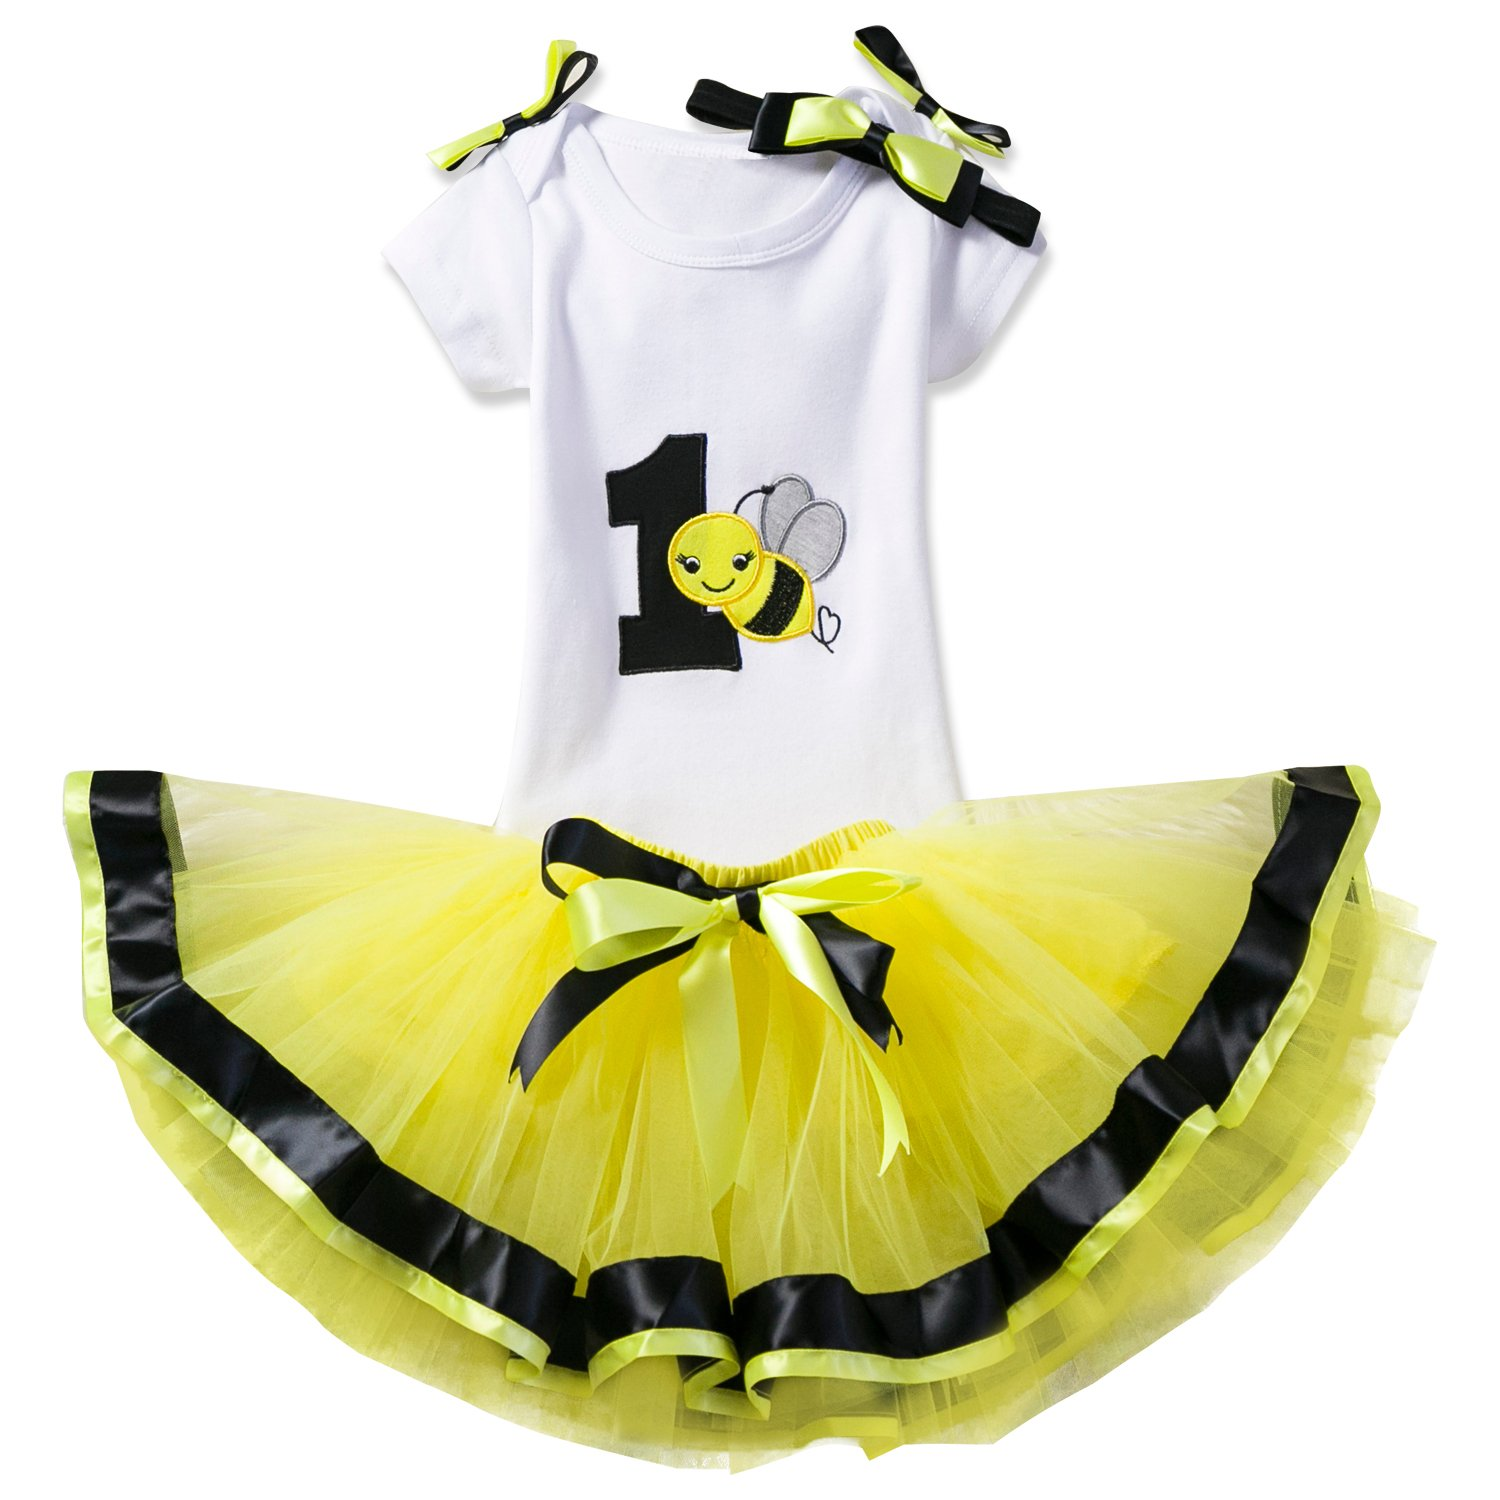 NNJXD Girl Newborn Crown Tutu 1 ° Compleanno 3 pezzi Flower Outfit Pagliaccetto + Gonna e fascia